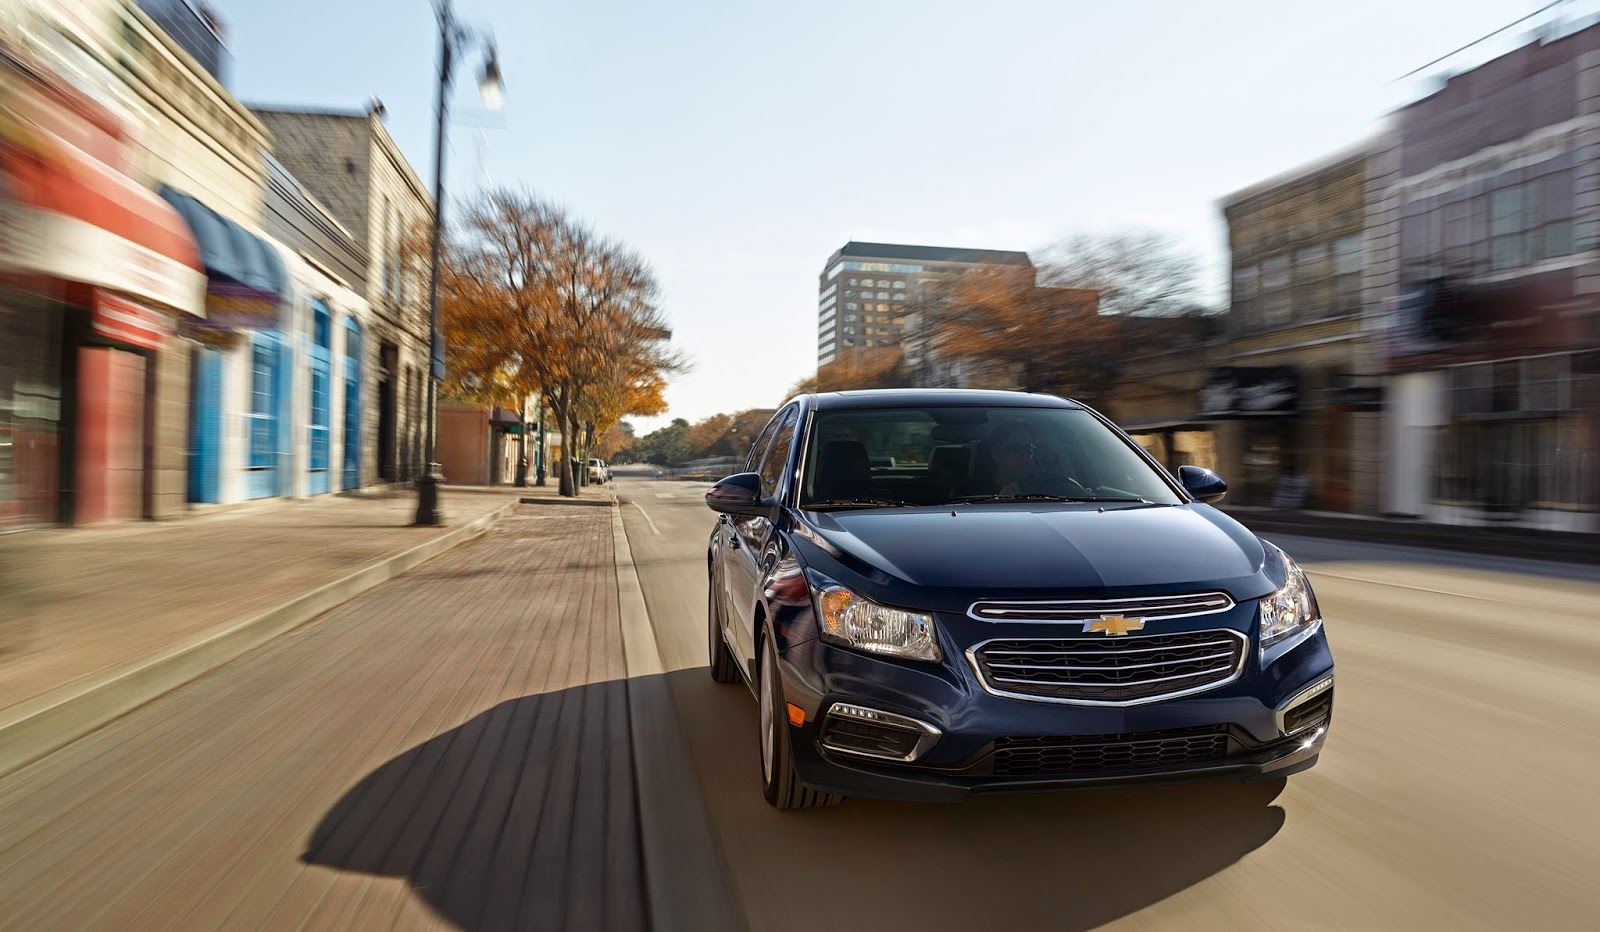 2014 Fleet Car of the Year: Chevrolet Cruze